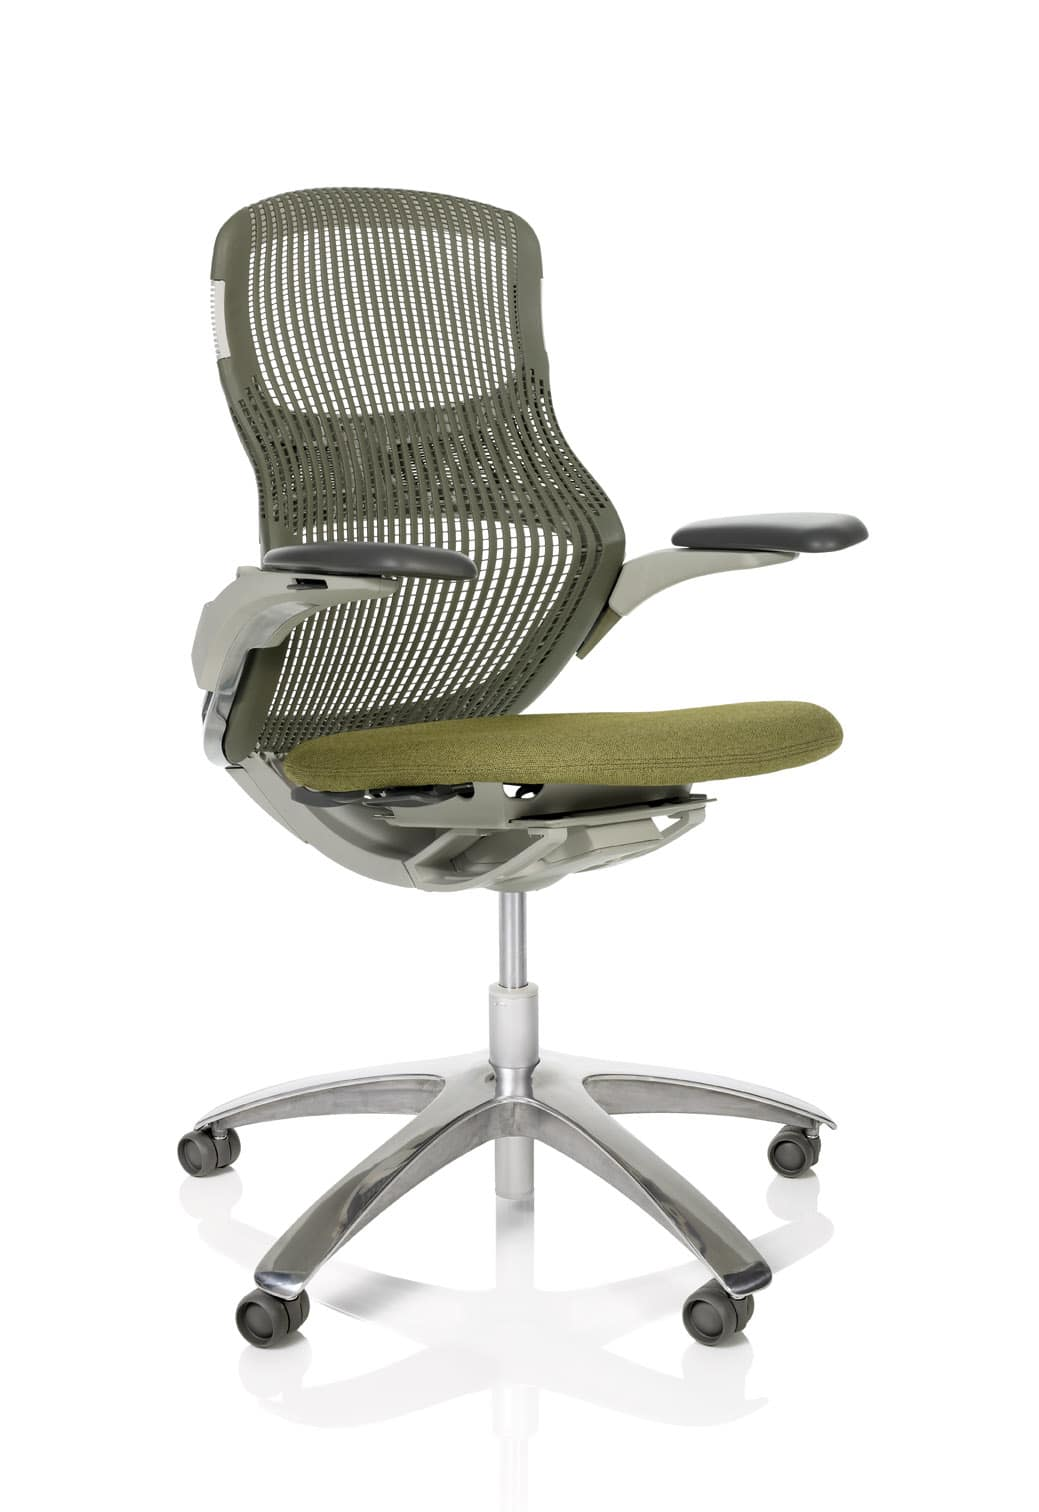 Best Ergonomic Office Chairs Finding The Best Ergonomic Office Chair Systems Furniture